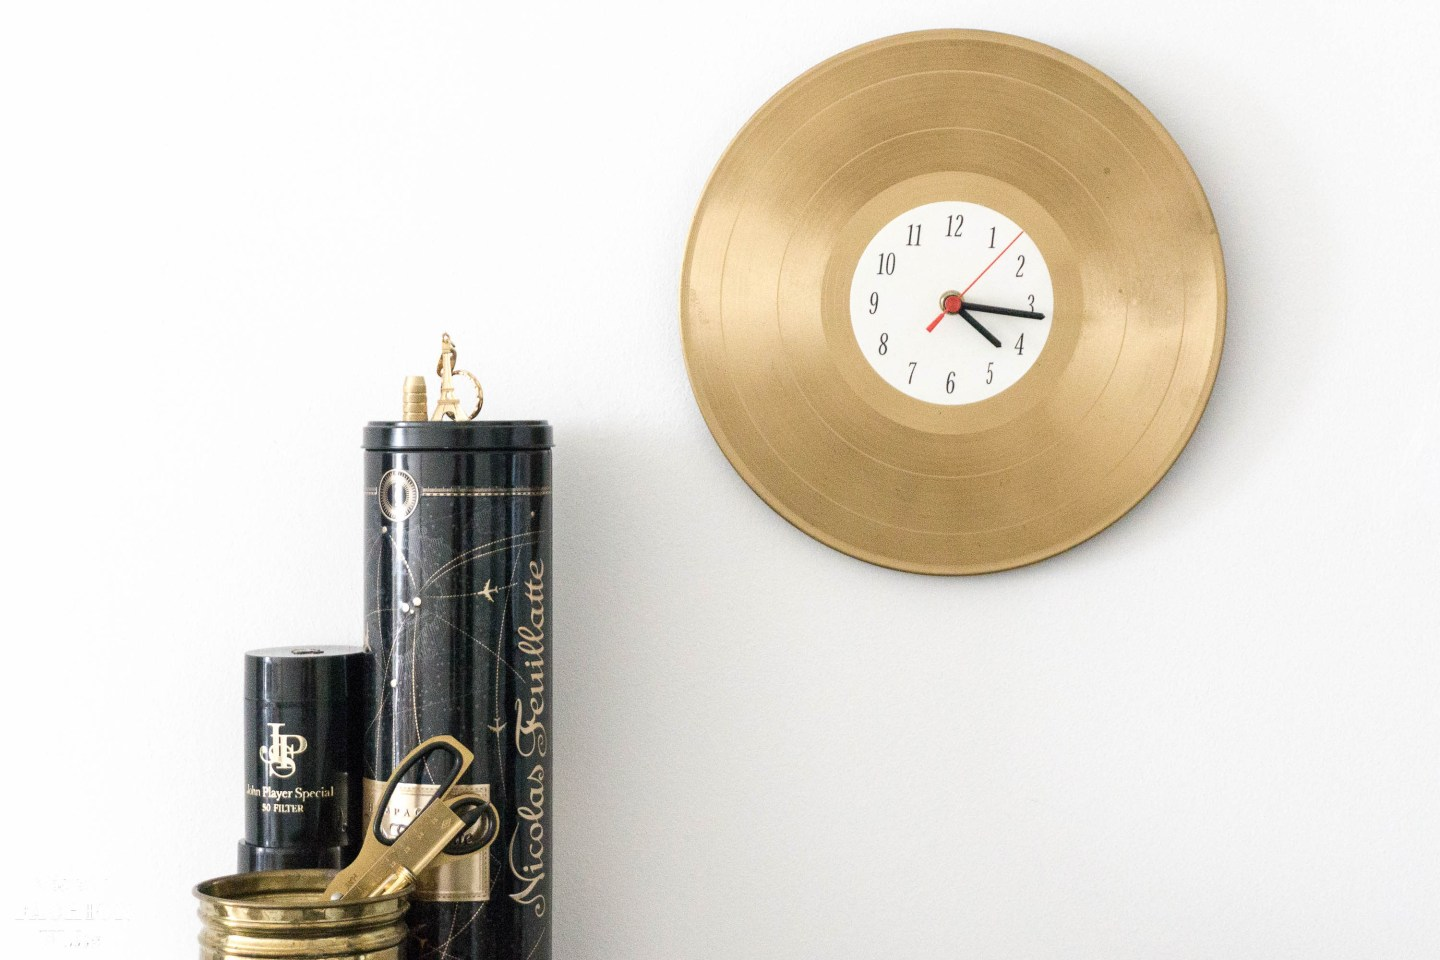 DIY Upcycling - Uhr aus Schallplatte! Vinyl based projects